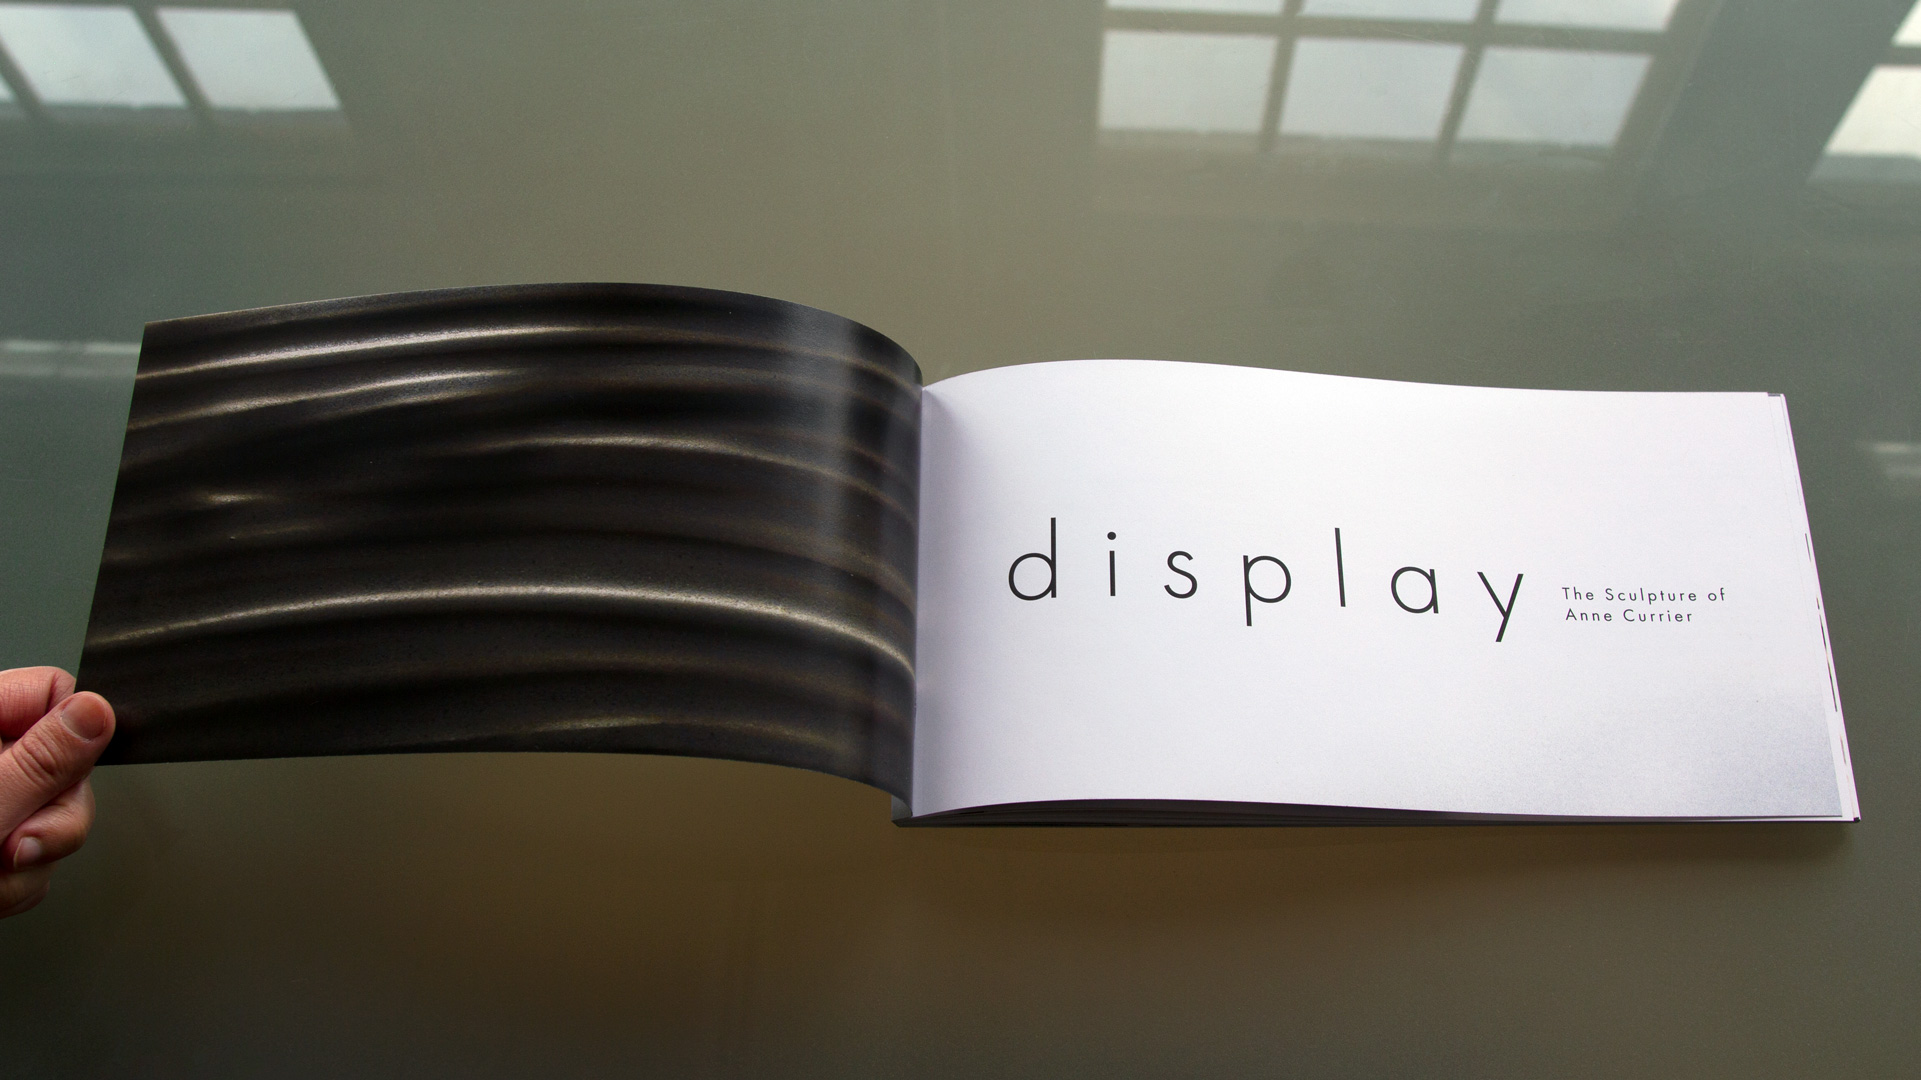 Artists book design, Display, Anne Currier, publication